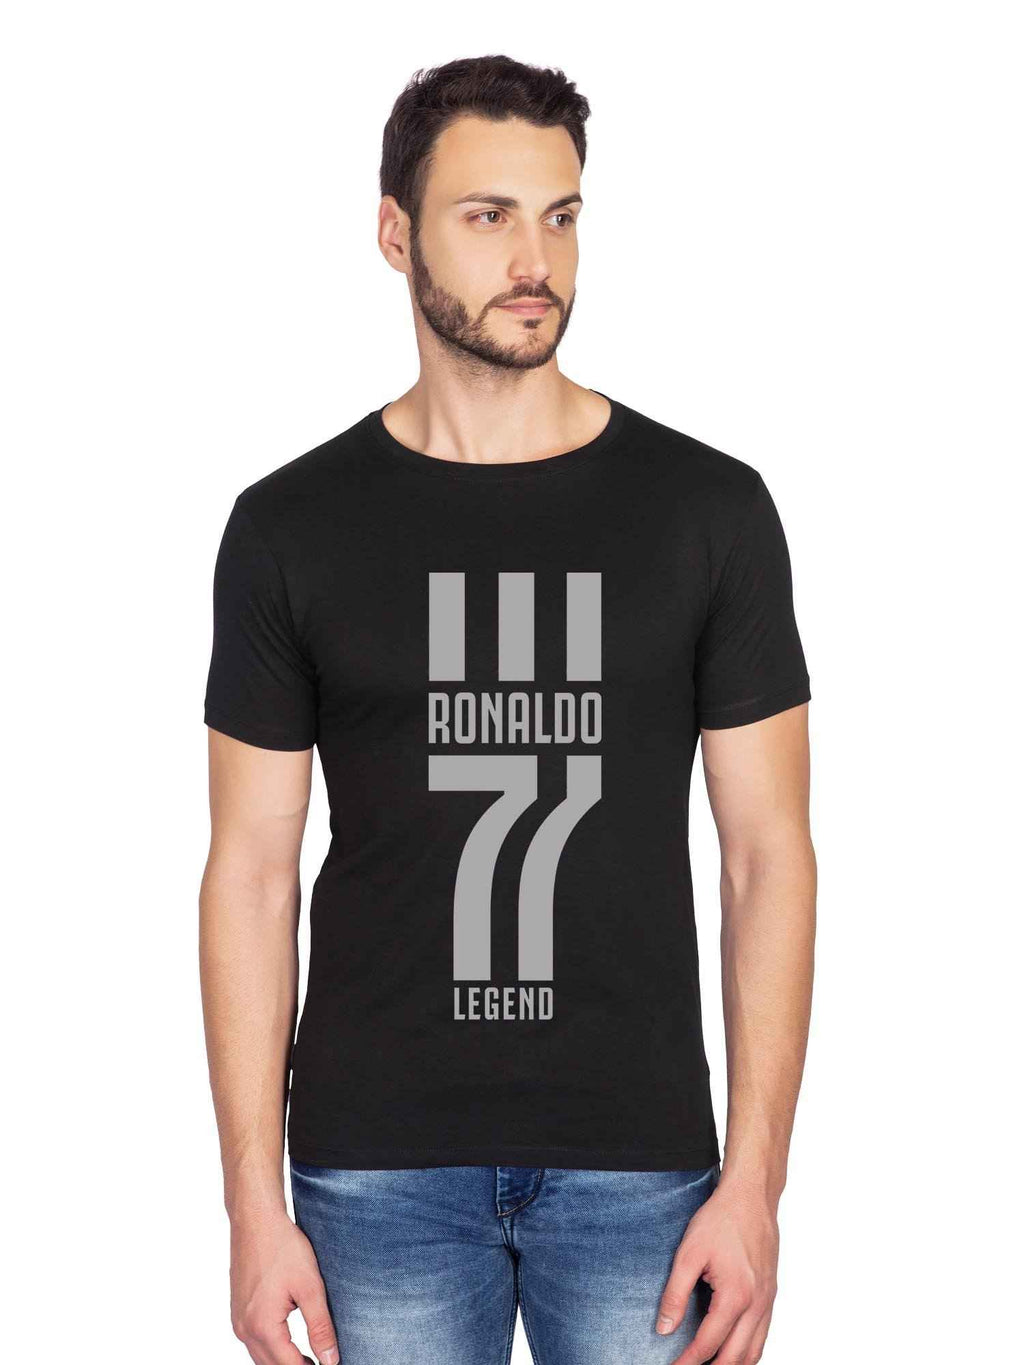 Legend Ronaldo Graphics Half Tshirt - bluehaat